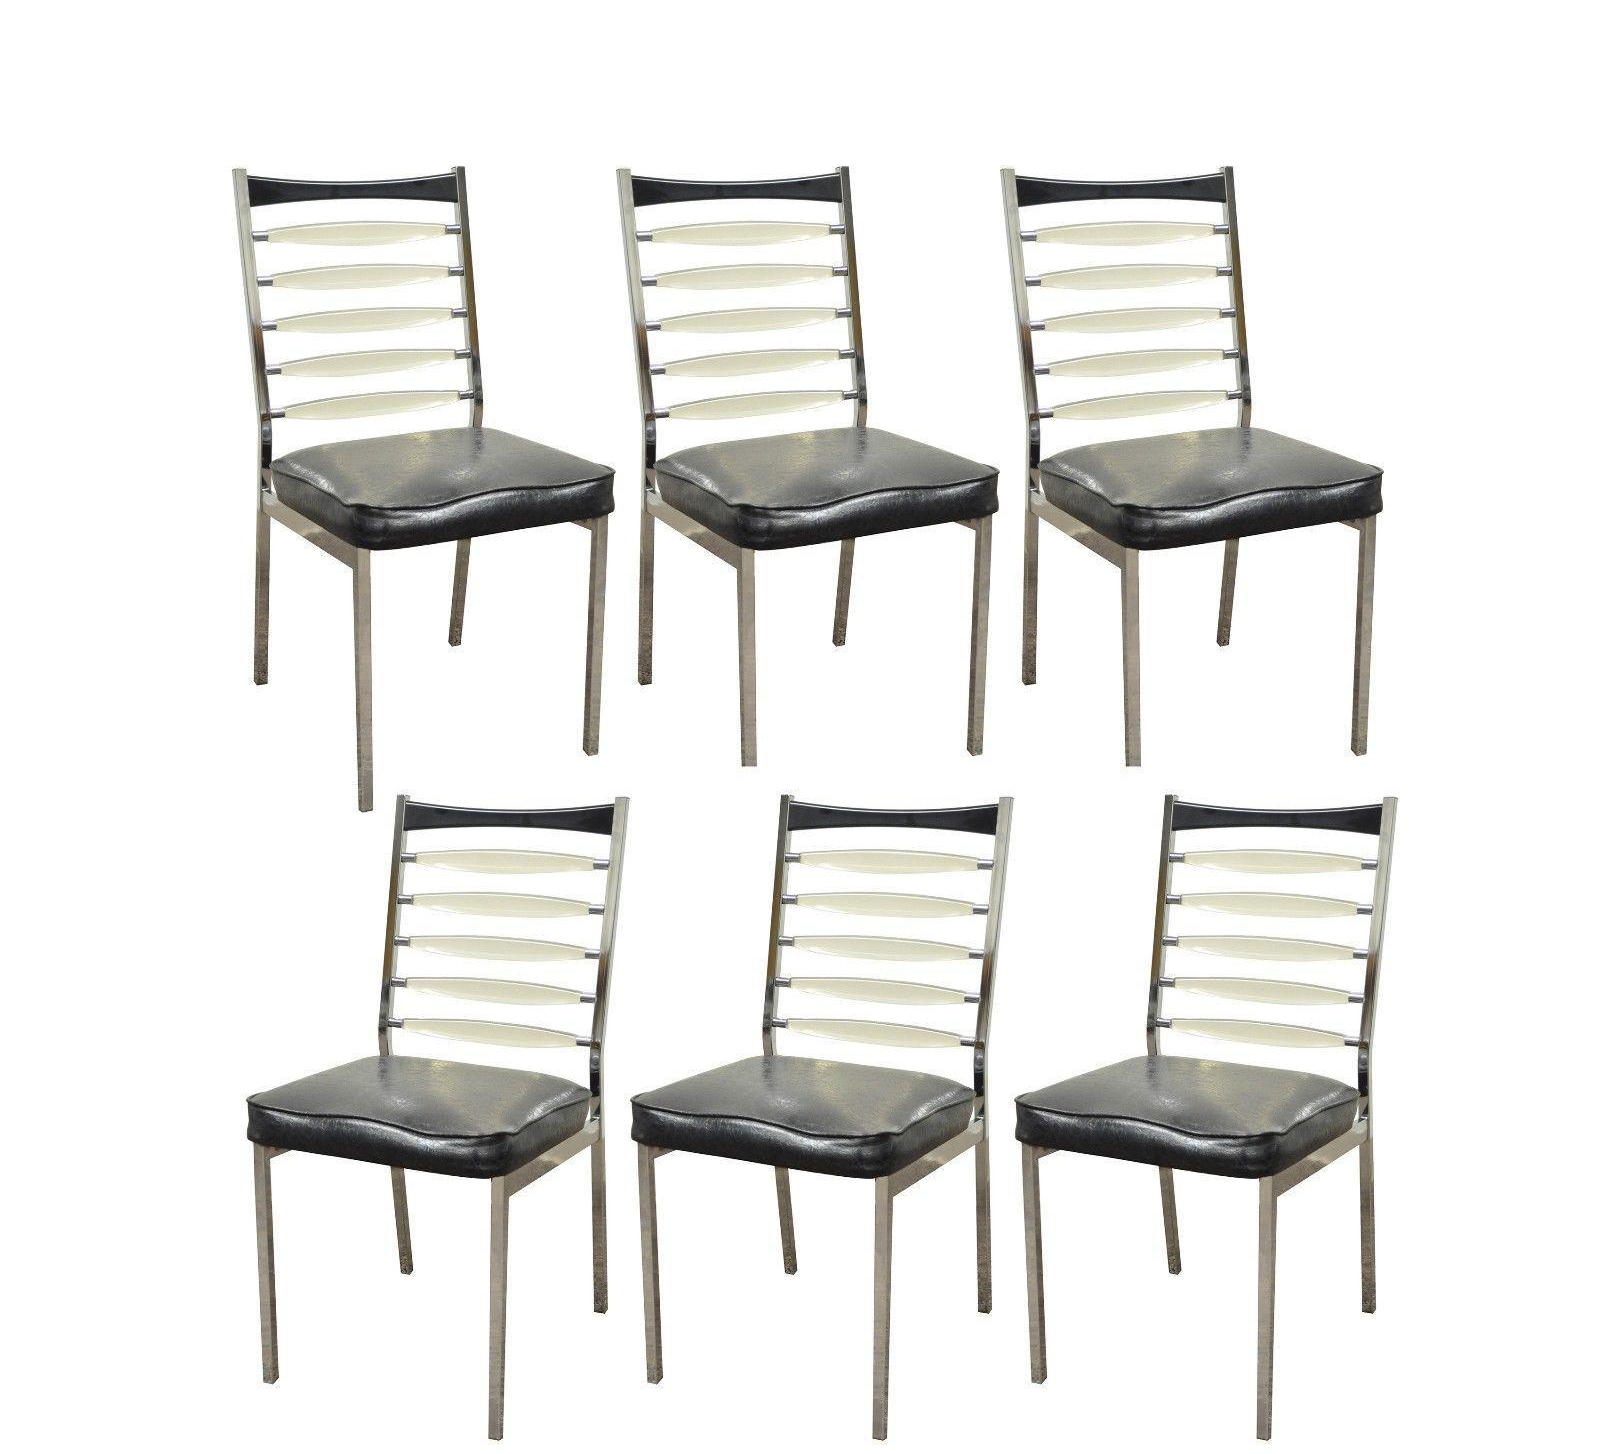 Set 6 Vintage Mid Century Modern Daystrom Chrome Lucite Ladderback Dining  Chairs   Image 11 Of